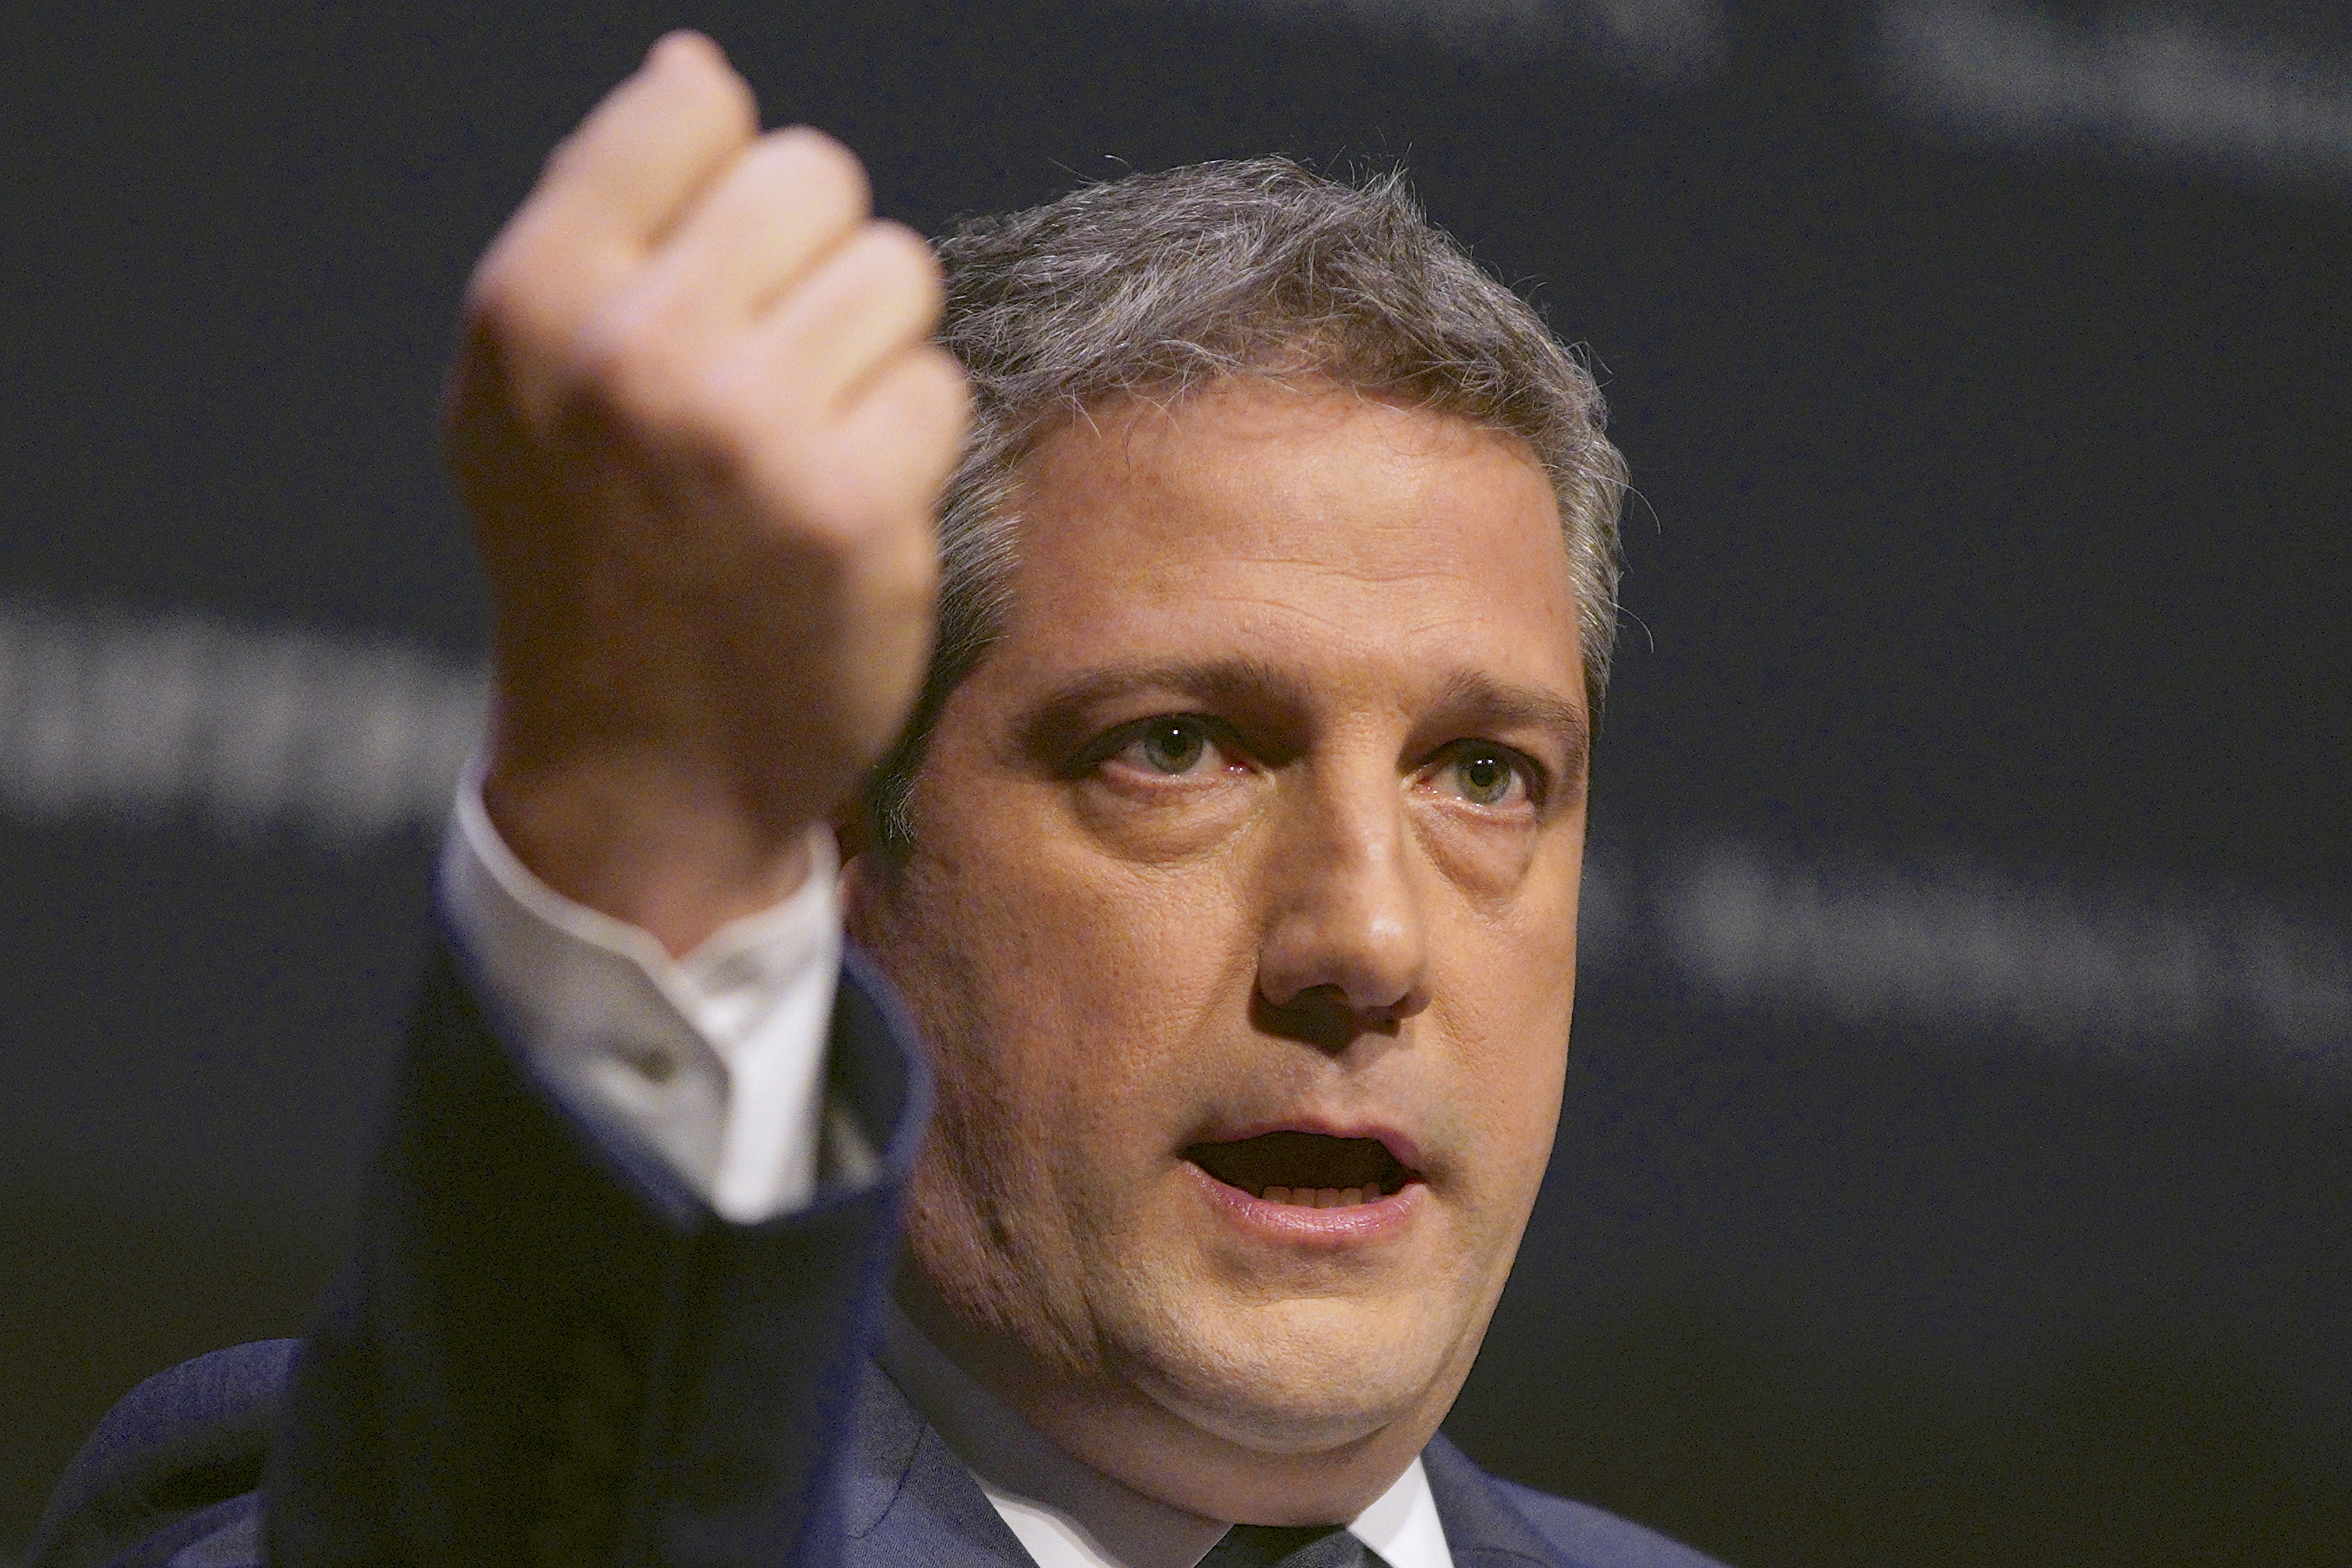 Dems have to win over 'working class' voters to save abortion rights says 2020 hopeful Tim Ryan